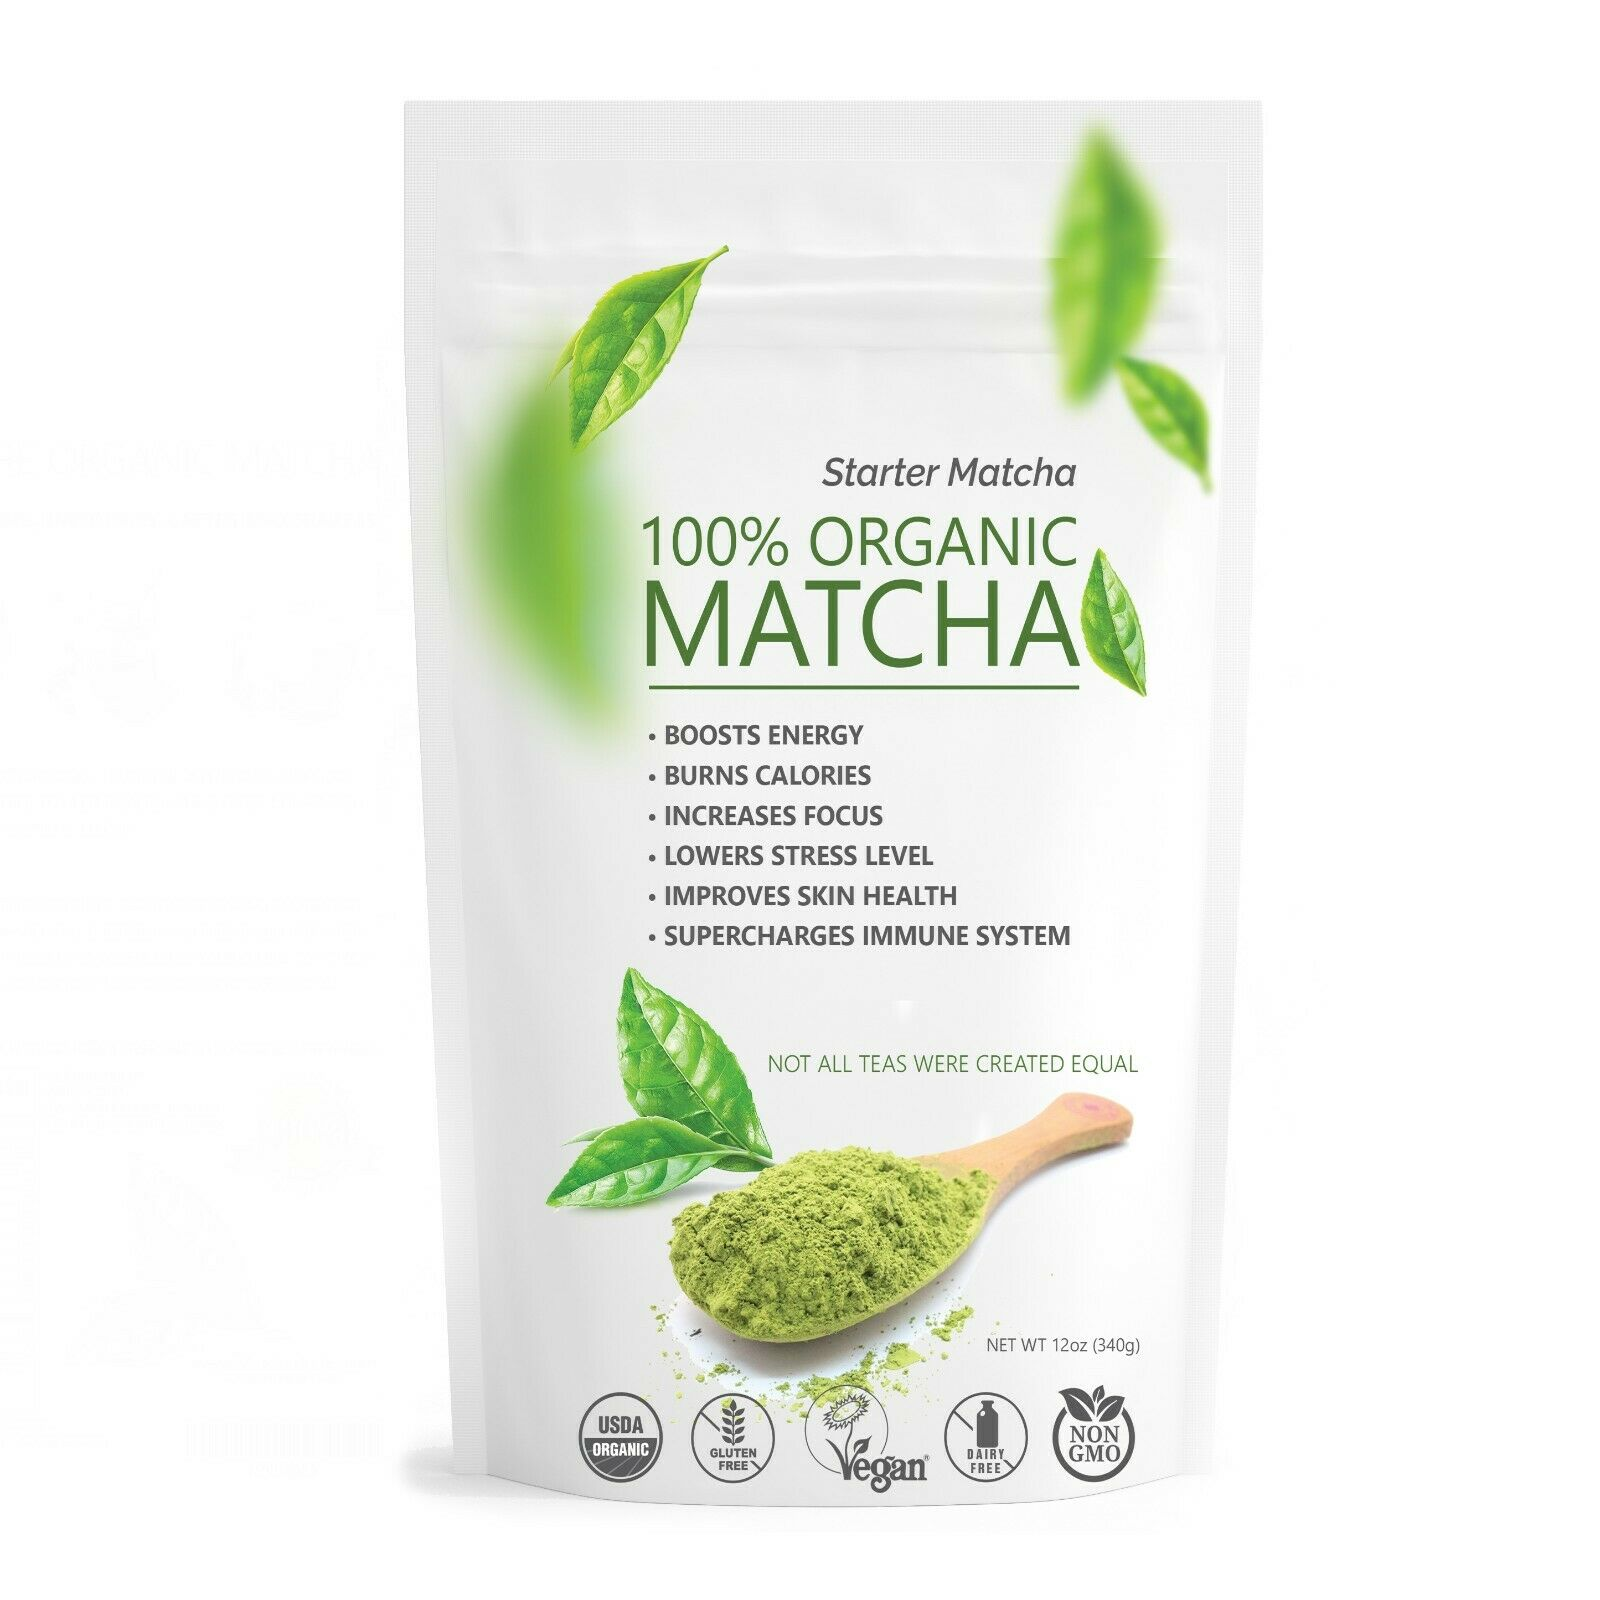 Starter Matcha Pure Organic Green Tea Powder - Culinary Grade 12oz